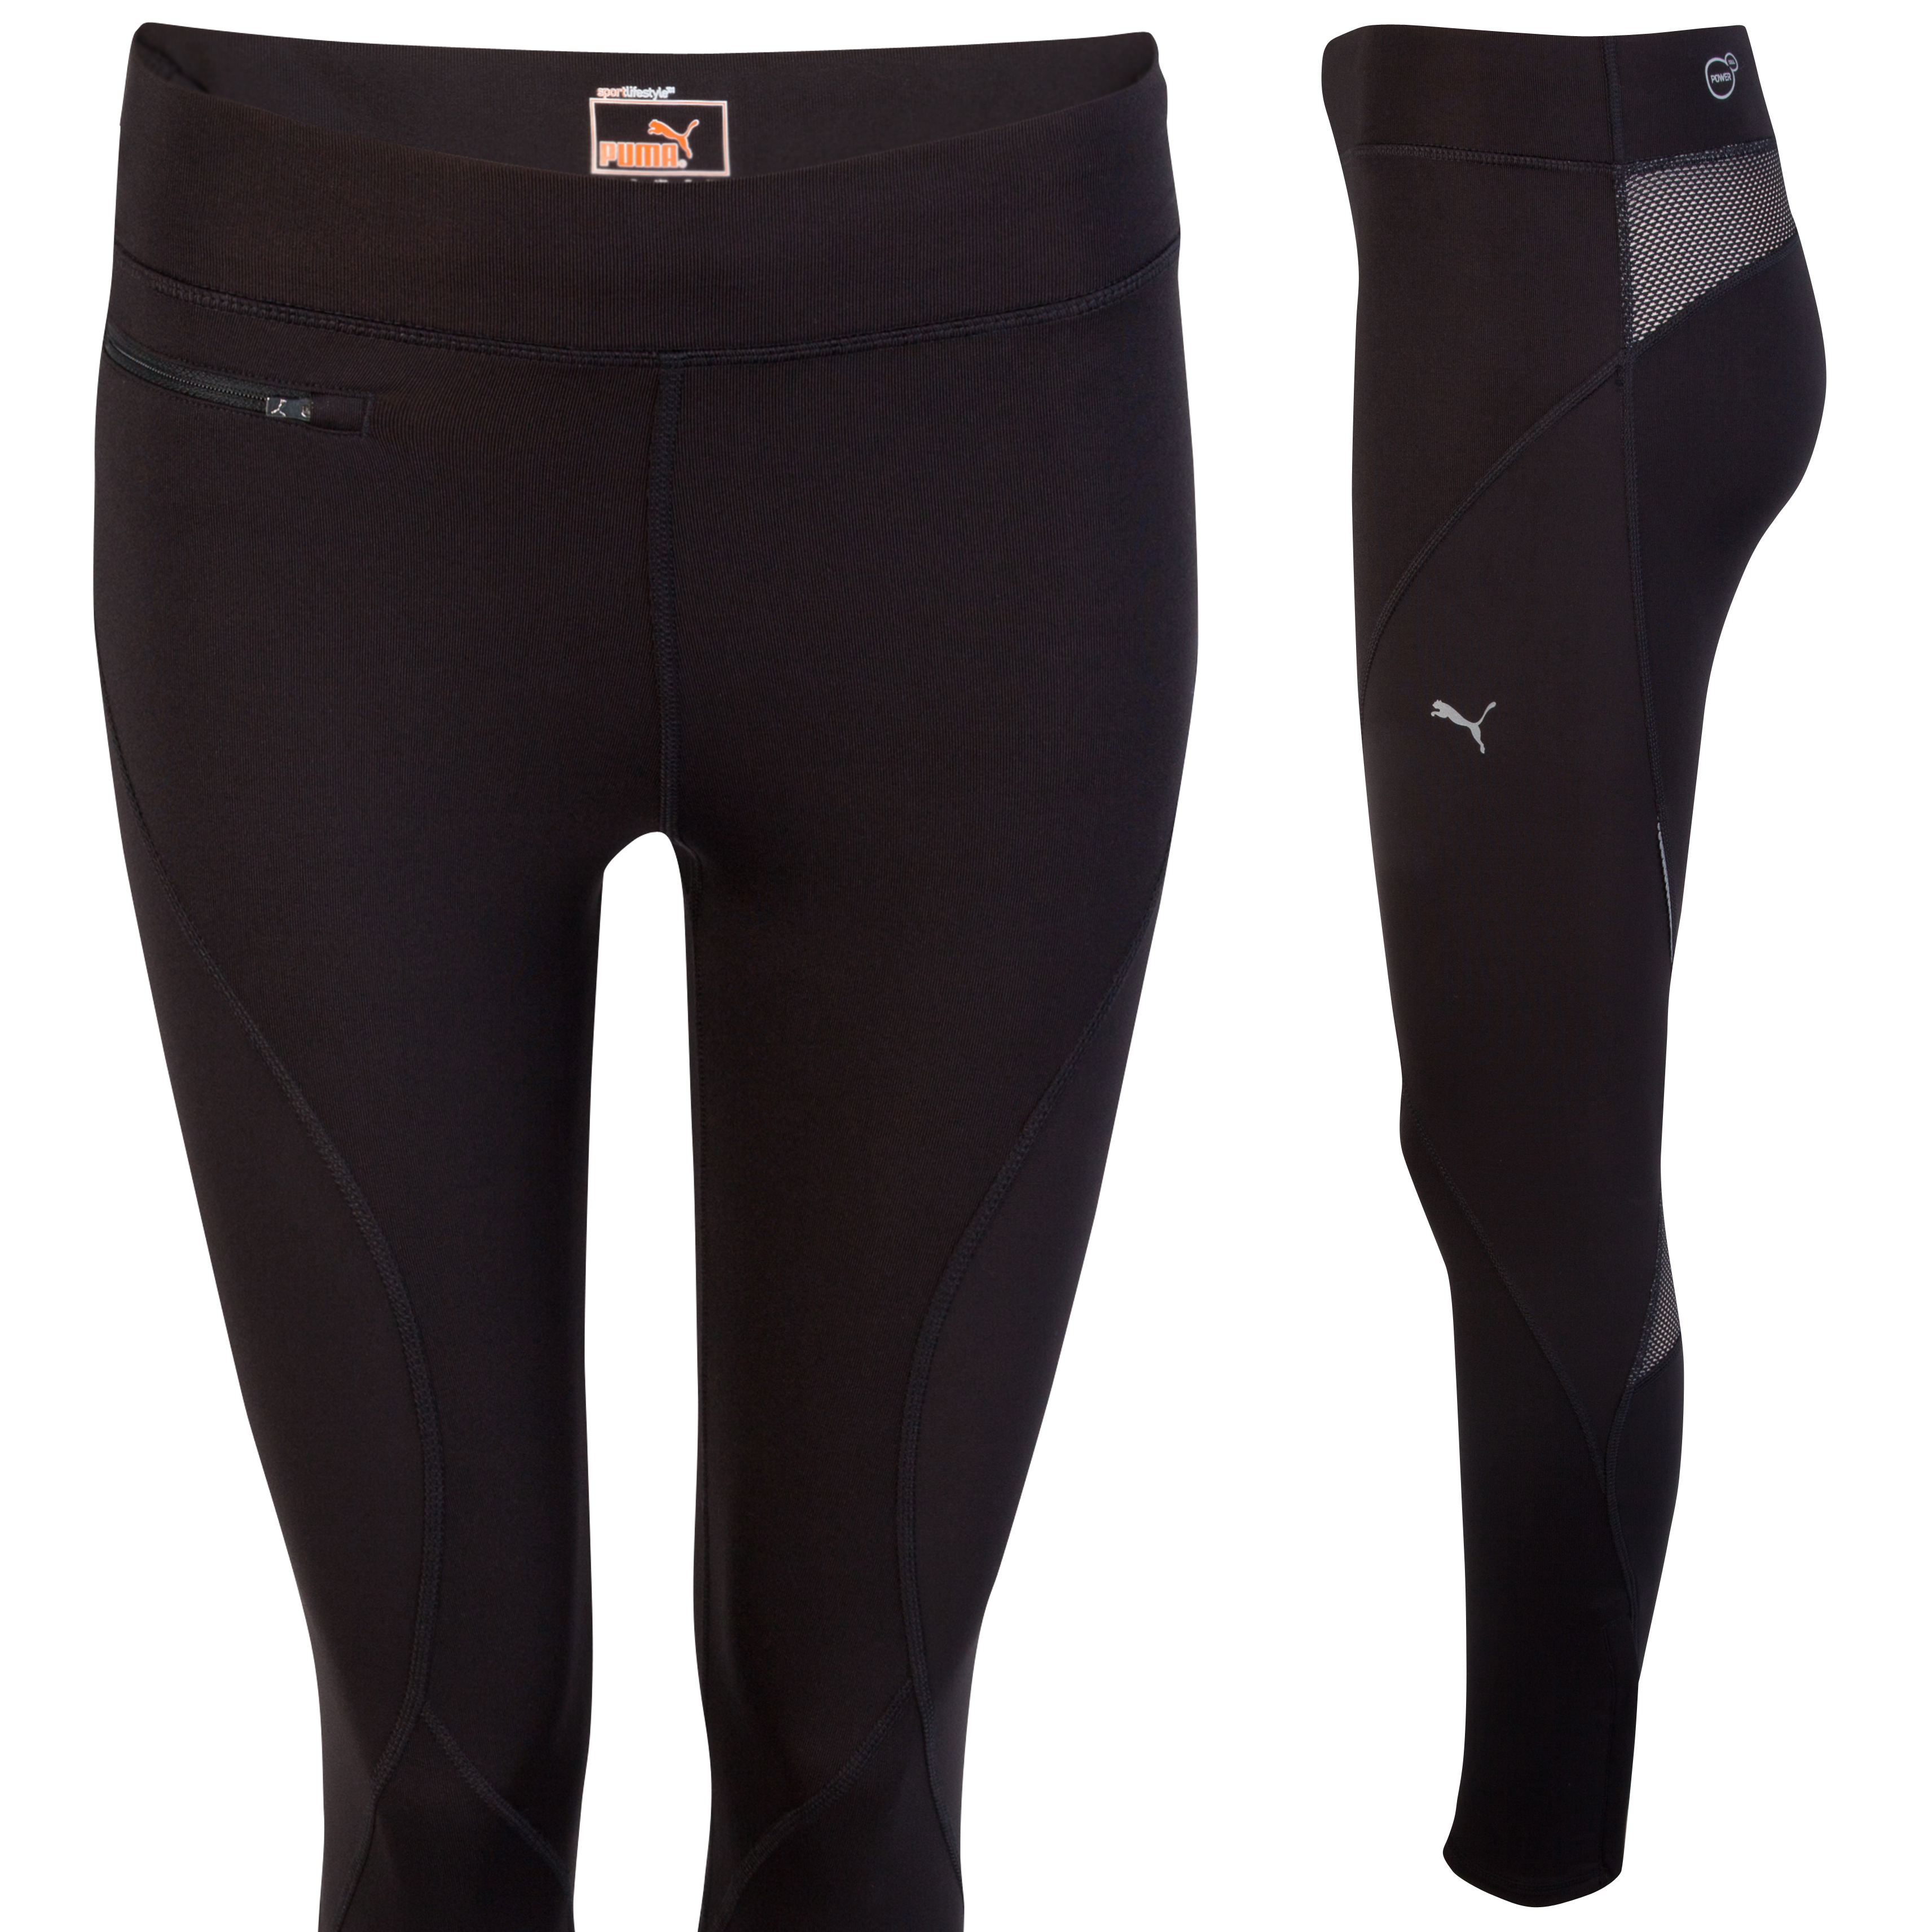 Puma Run Long Tights - Black - Womens